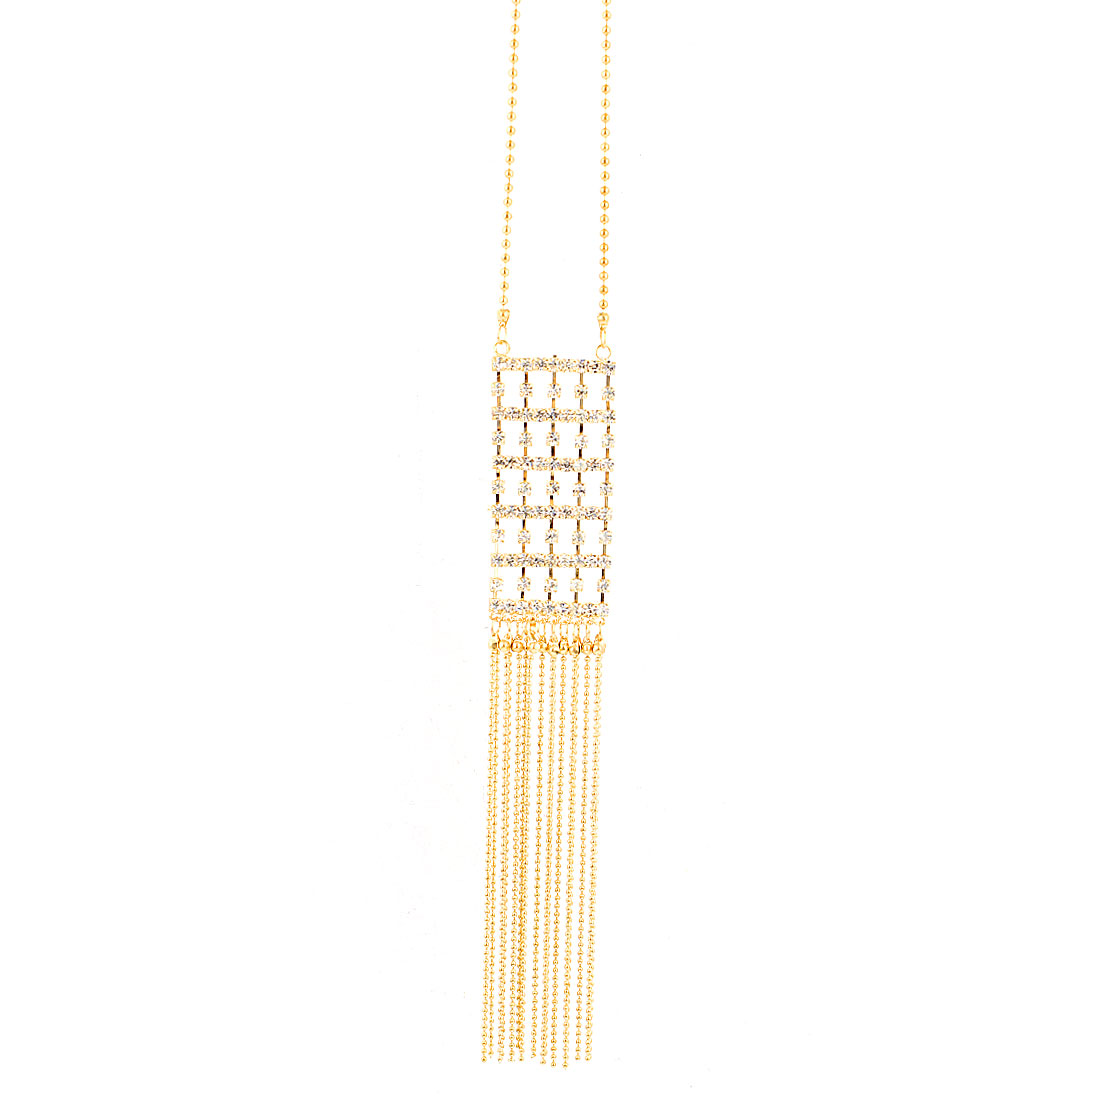 Gold Tone Beads String Tassels Rhinestone Detailing Pendant Dress Sweater Necklace for Lady